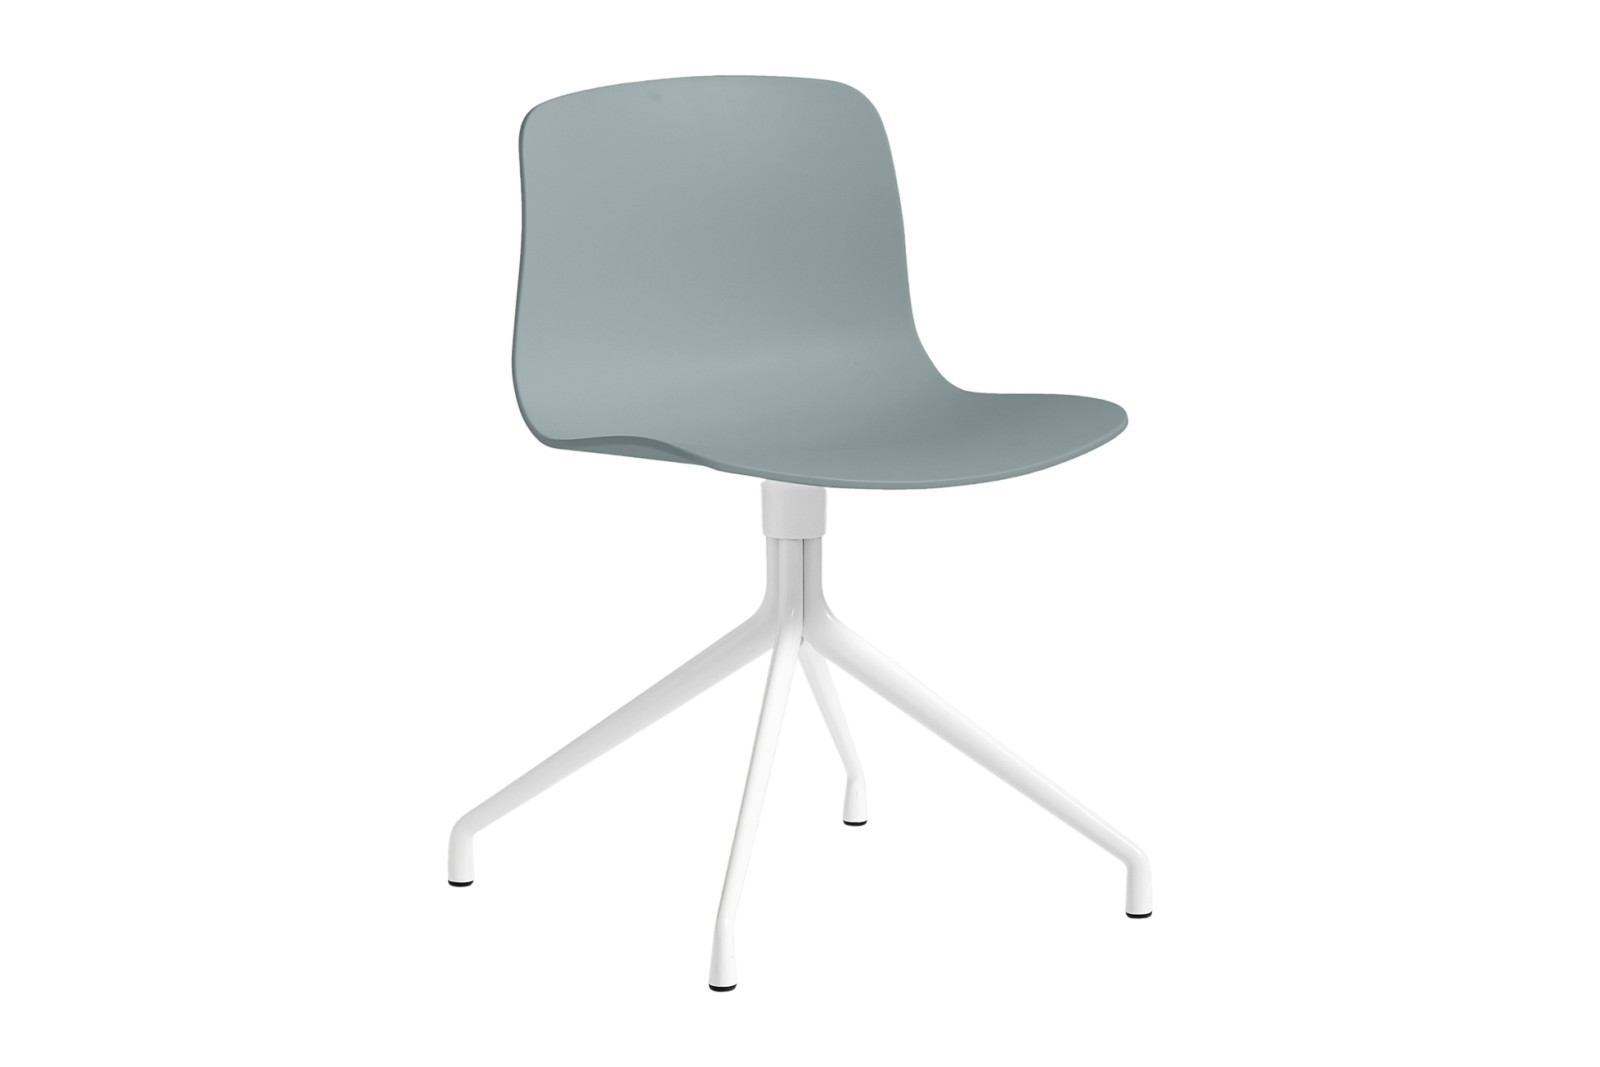 About A Chair AAC10 Dusty blue, White Powder Coated Aluminium